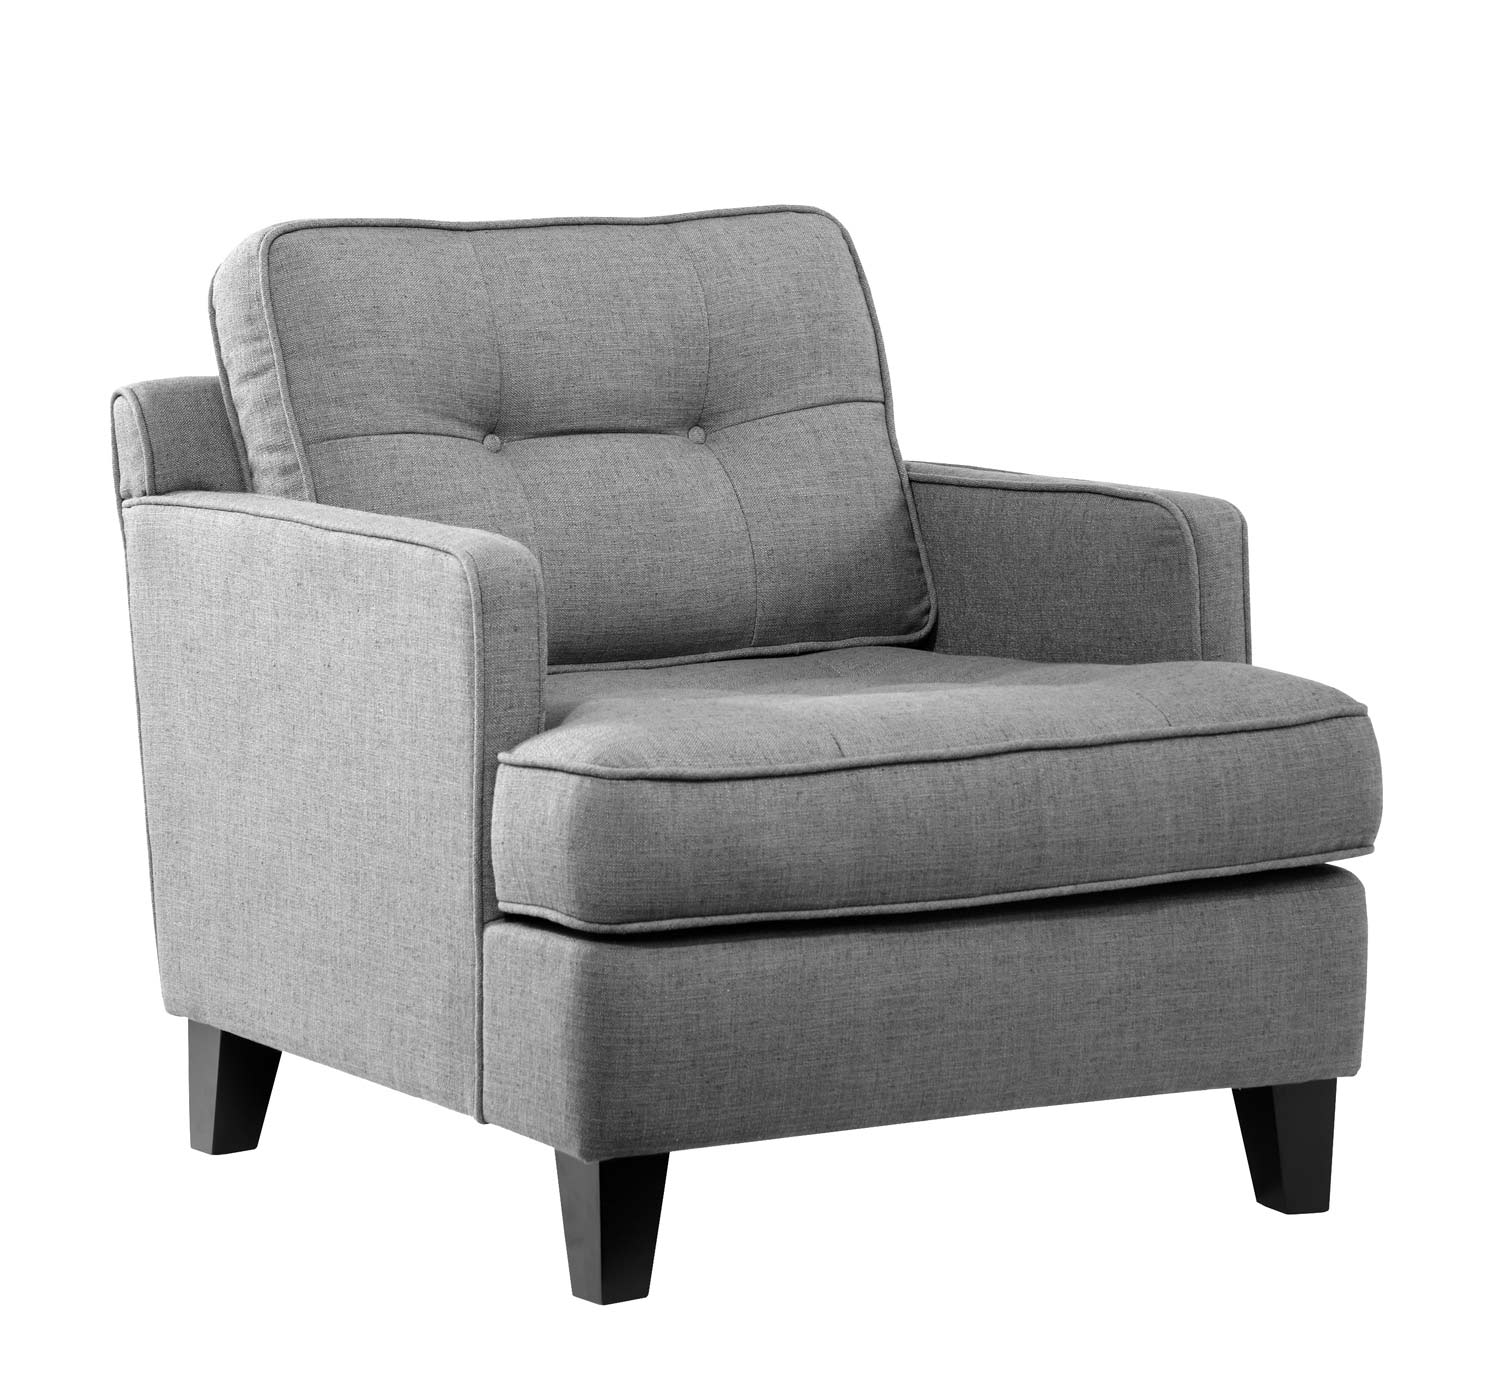 Cement Arm Chairs ~ Armen living eden sofa set cement gray fabric al